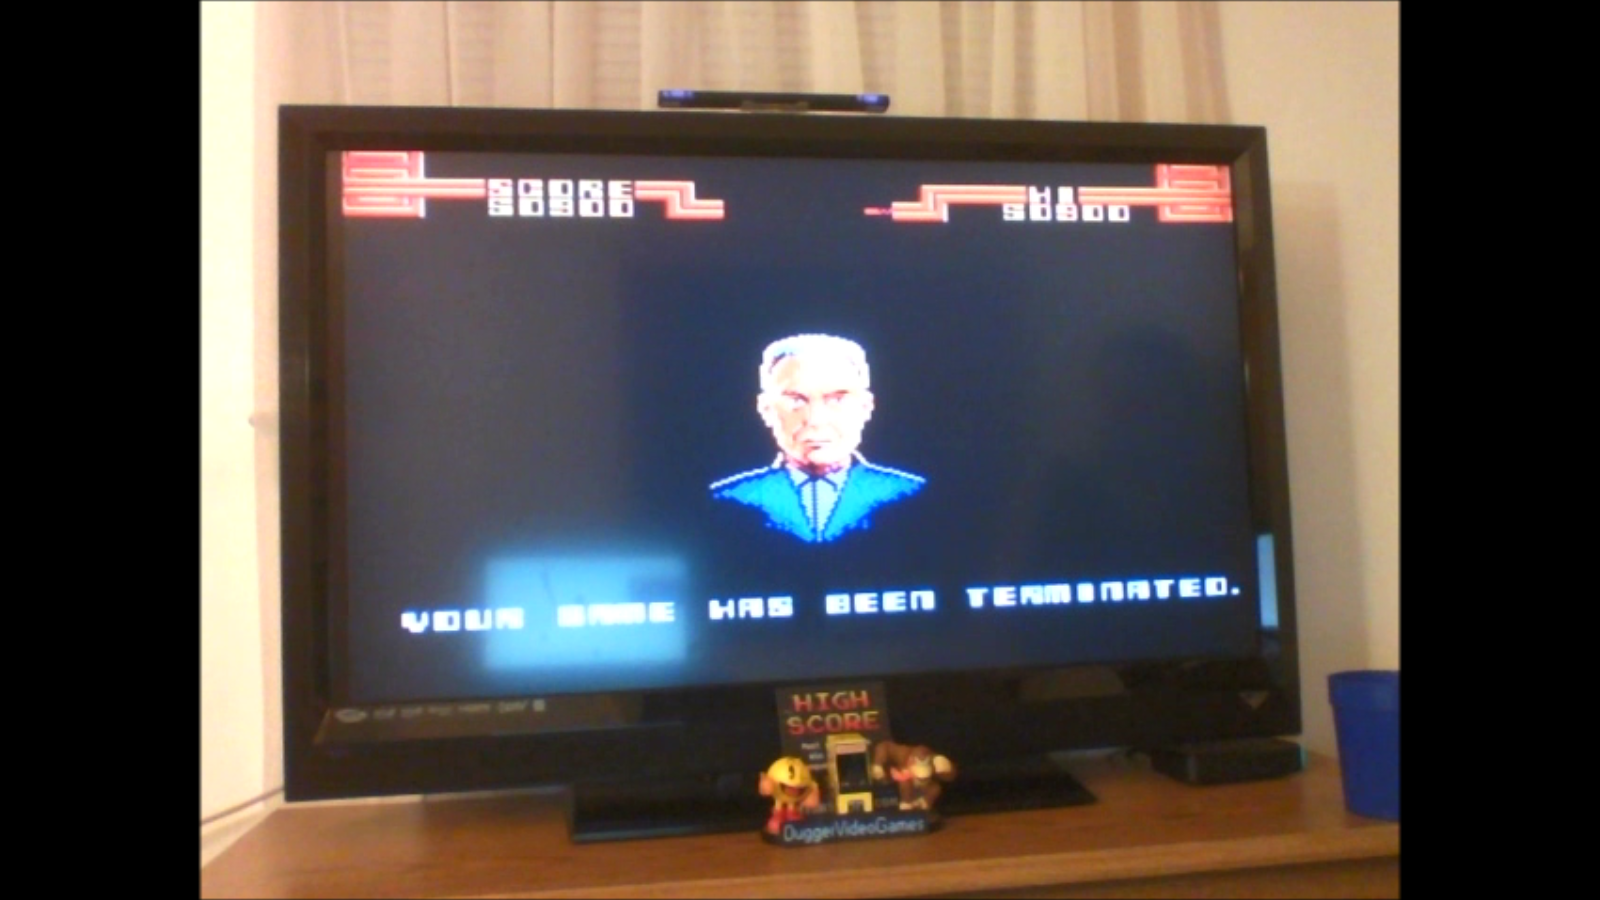 DuggerVideoGames: Total Recall (NES/Famicom Emulated) 50,900 points on 2017-02-26 01:04:31